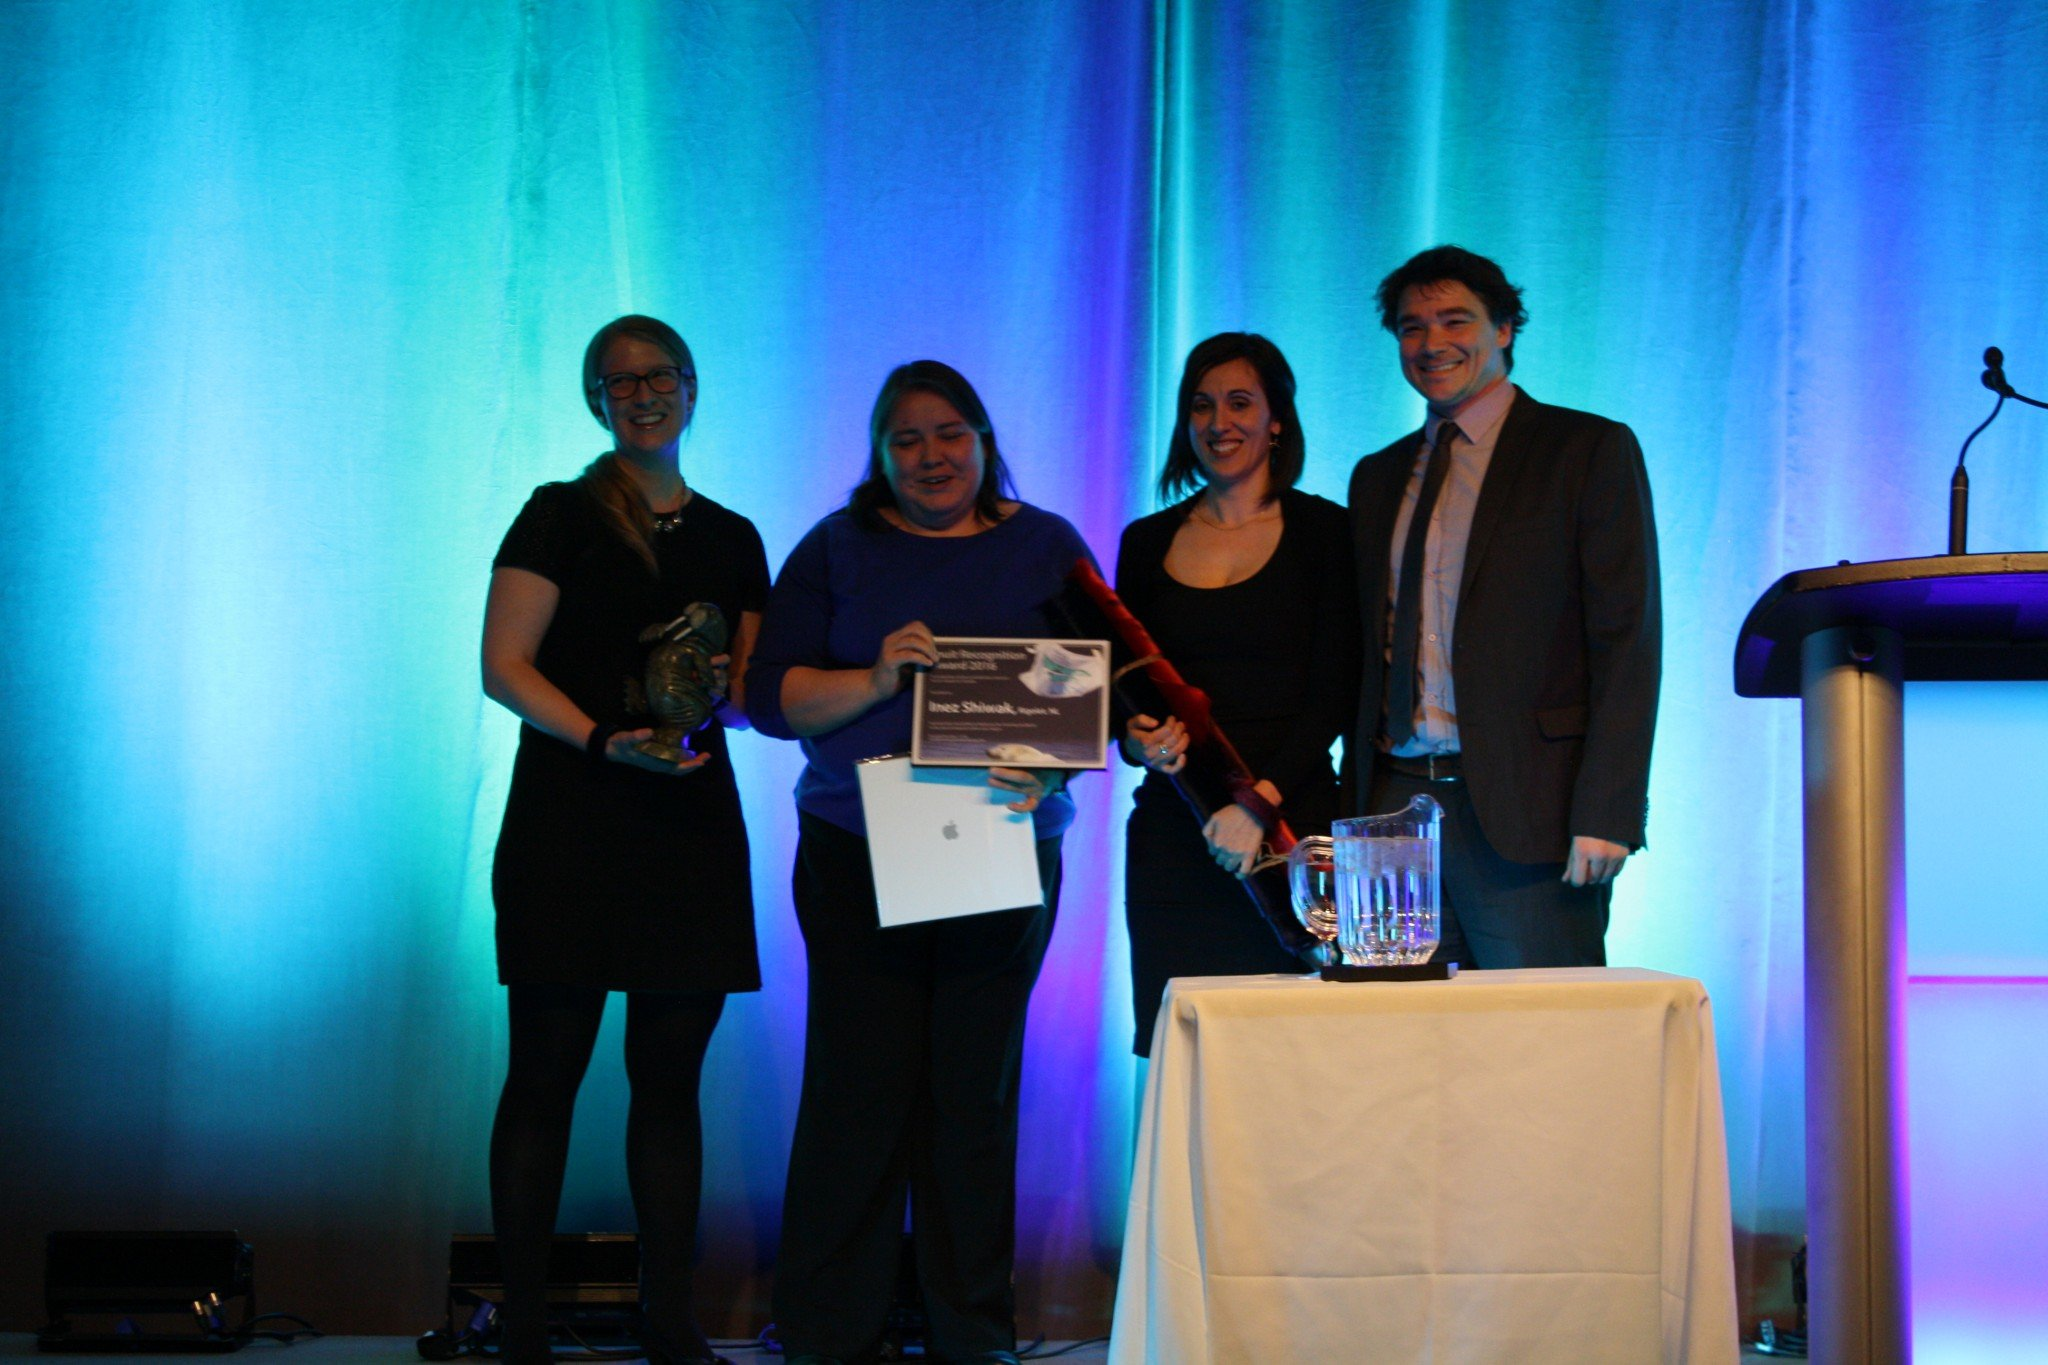 Call for Nominations: Inuit Recognition Award